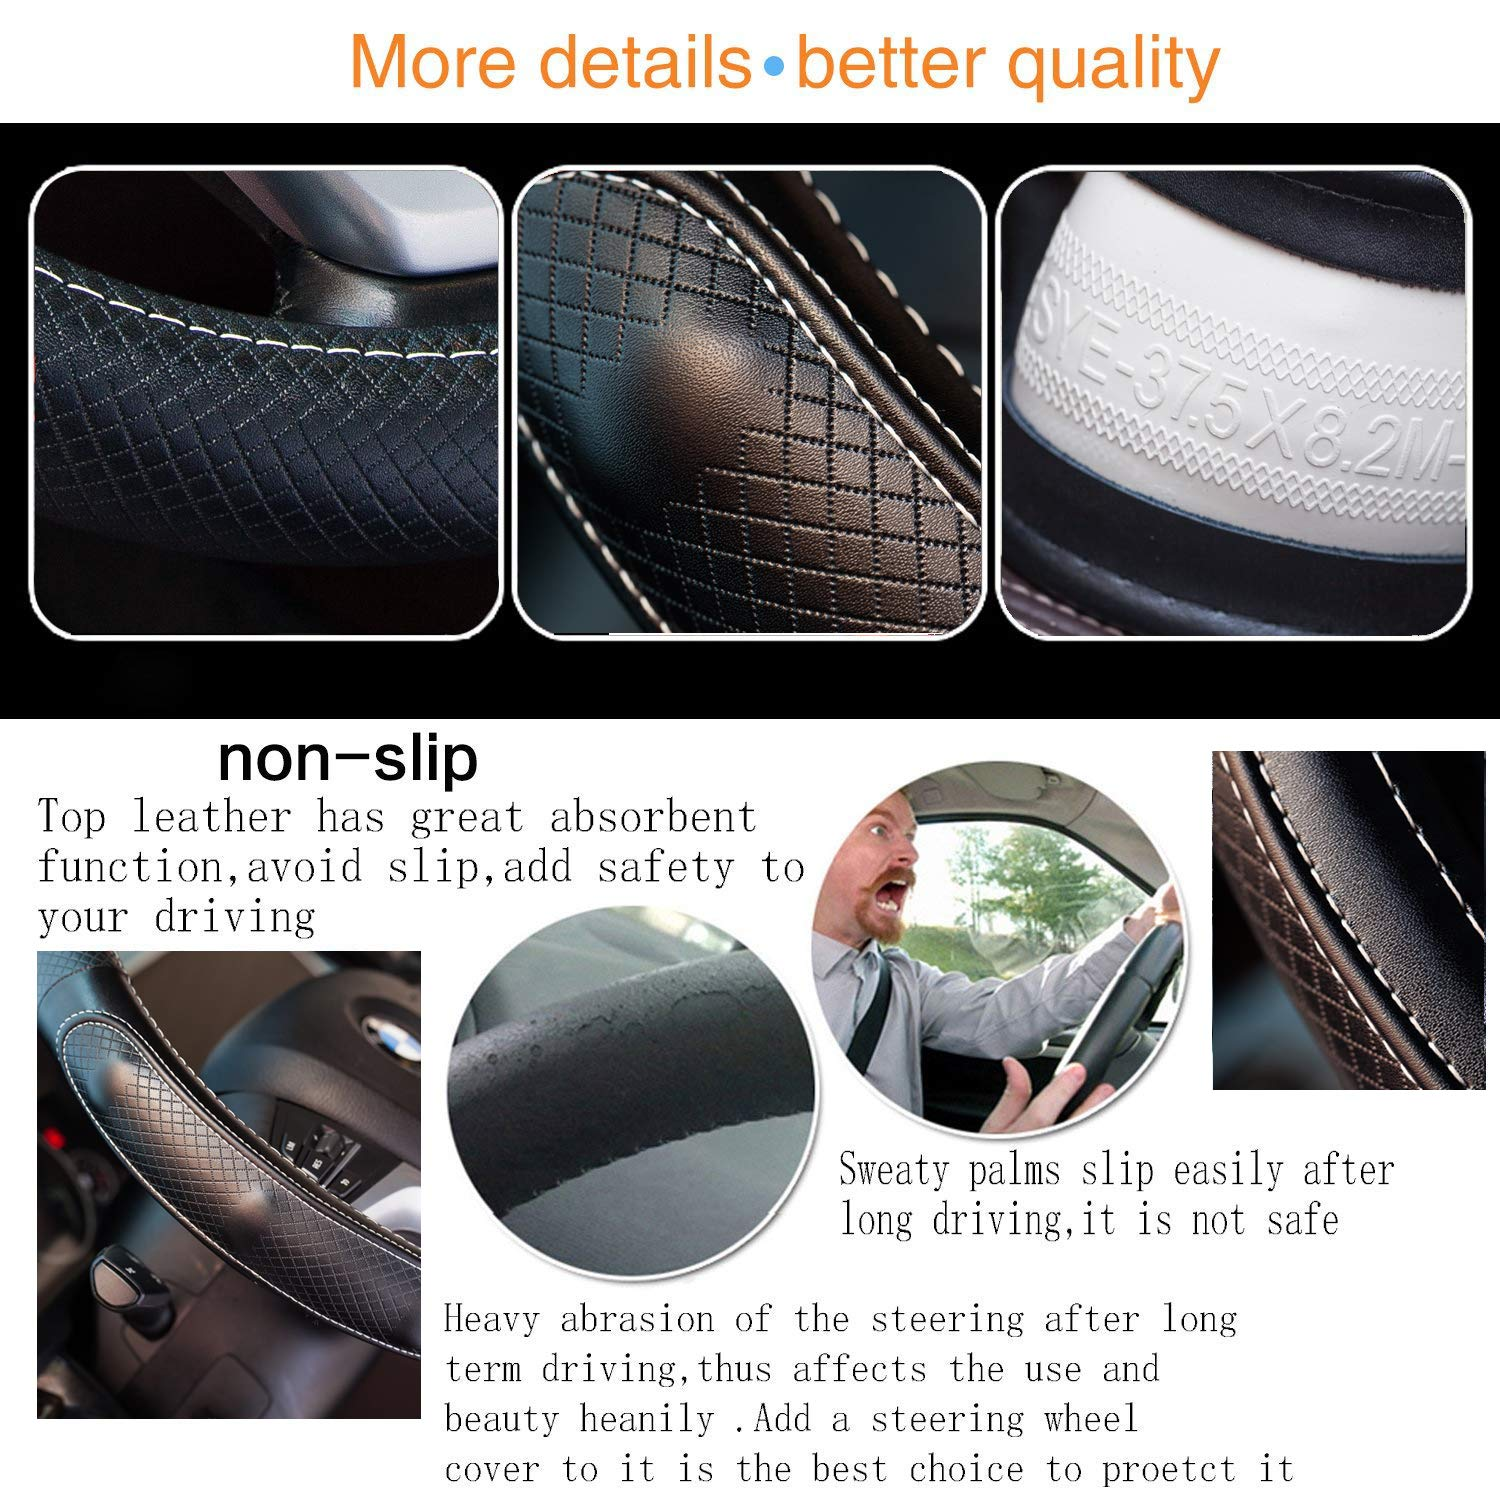 Super Accessories Auto Steering Wheel Cover Leather Universal 15 inch Fashion Feel Comfortable with Genuine Leather Steering Wheel Cover for Car Truck SUV (Black with White Lines)